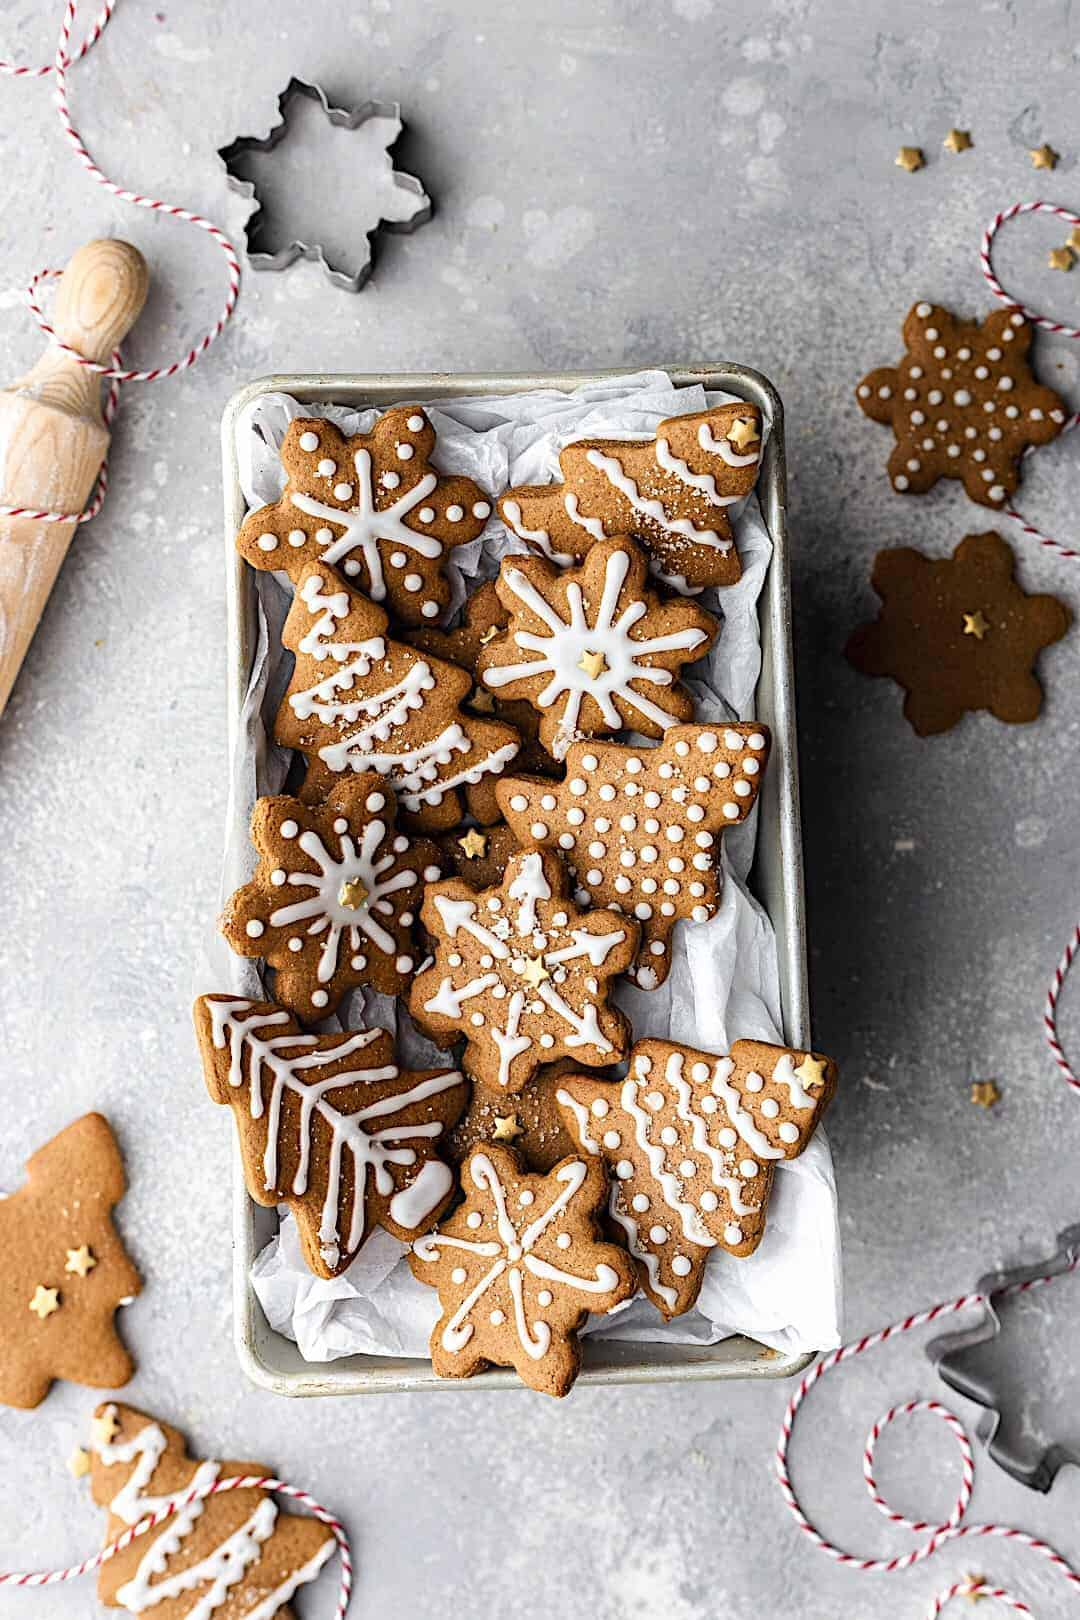 Easy Vegan Gingerbread Cookies #gingerbread #chistmas #vegan #cookies #biscuits #dairyfree